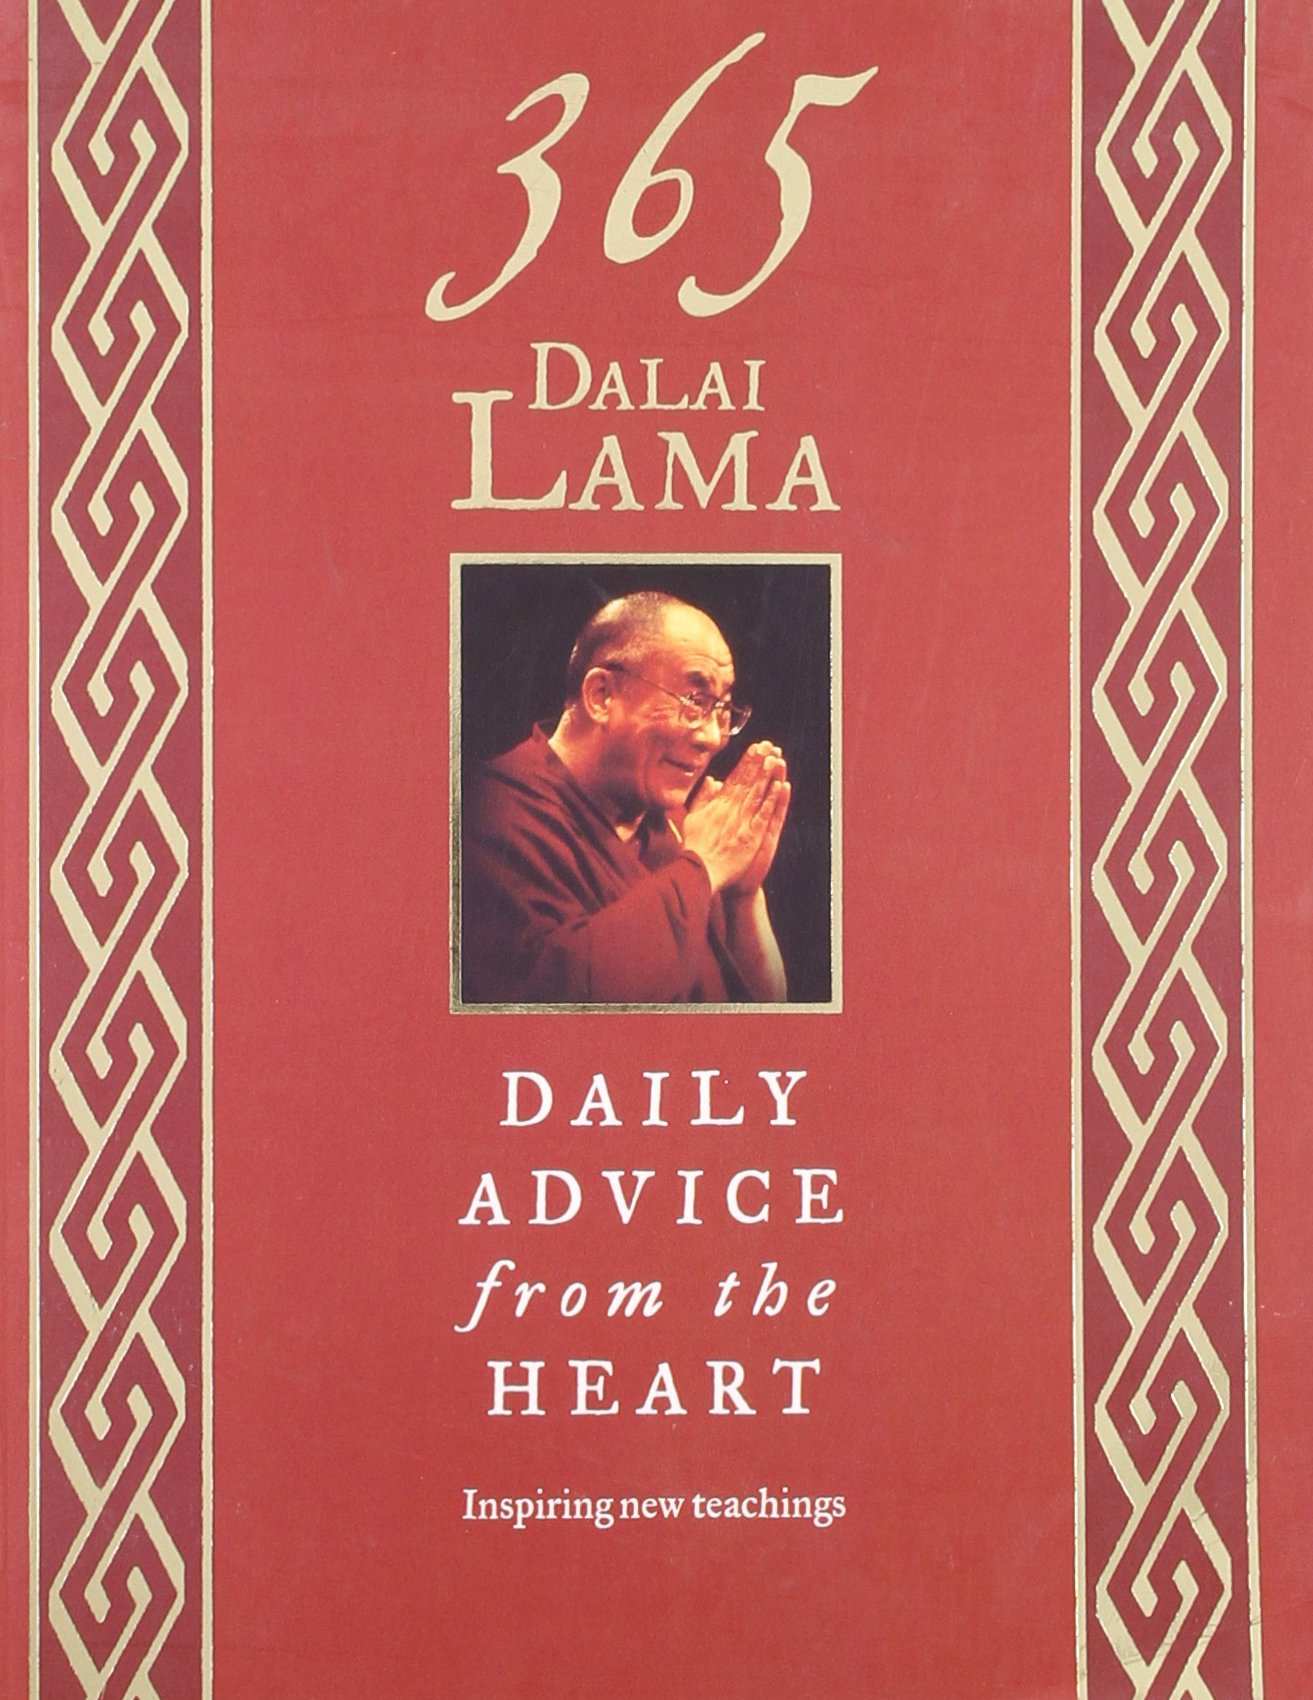 the ethic of compassion dalai lama essay Dalai lama essays the dalai lama has always been the central leader to the vajrayana sect of buddhism and the current lama's smiling face is one of the most.